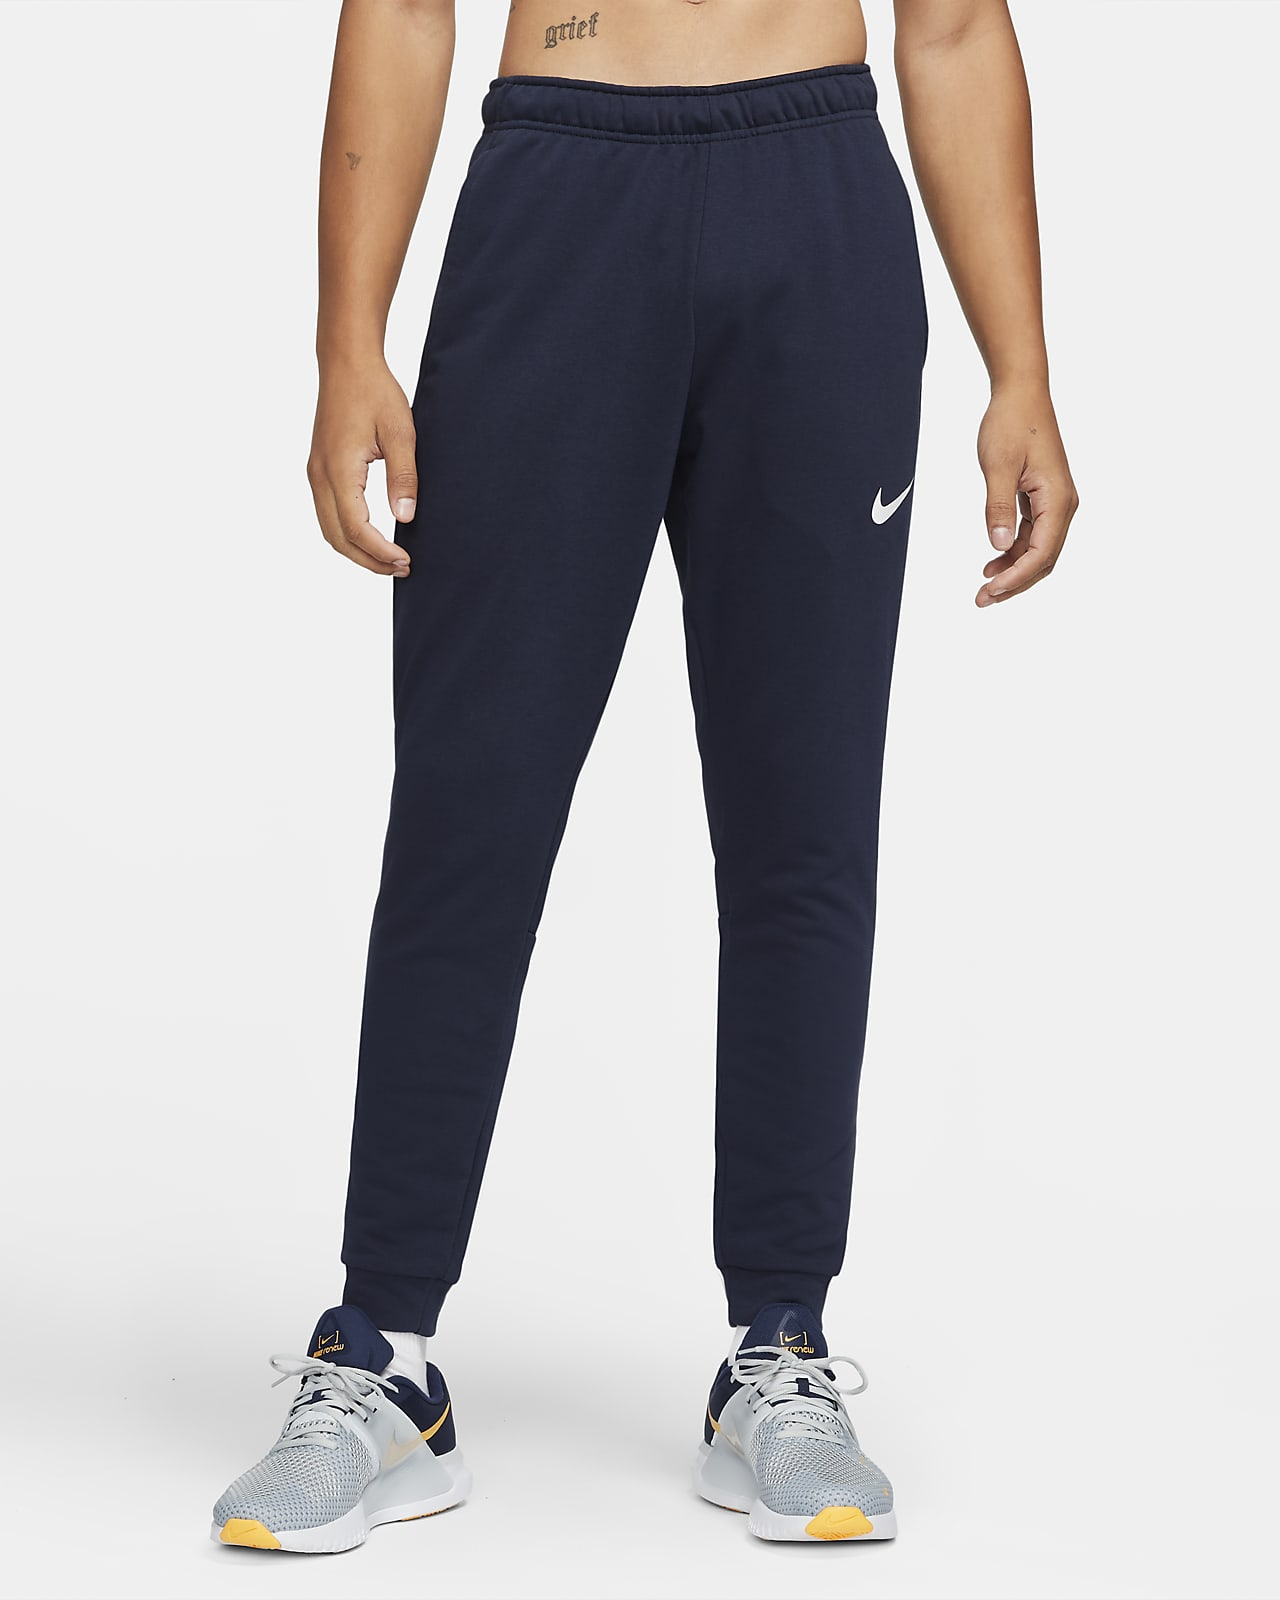 Nike Dri-FIT Men's Tapered Training Pants